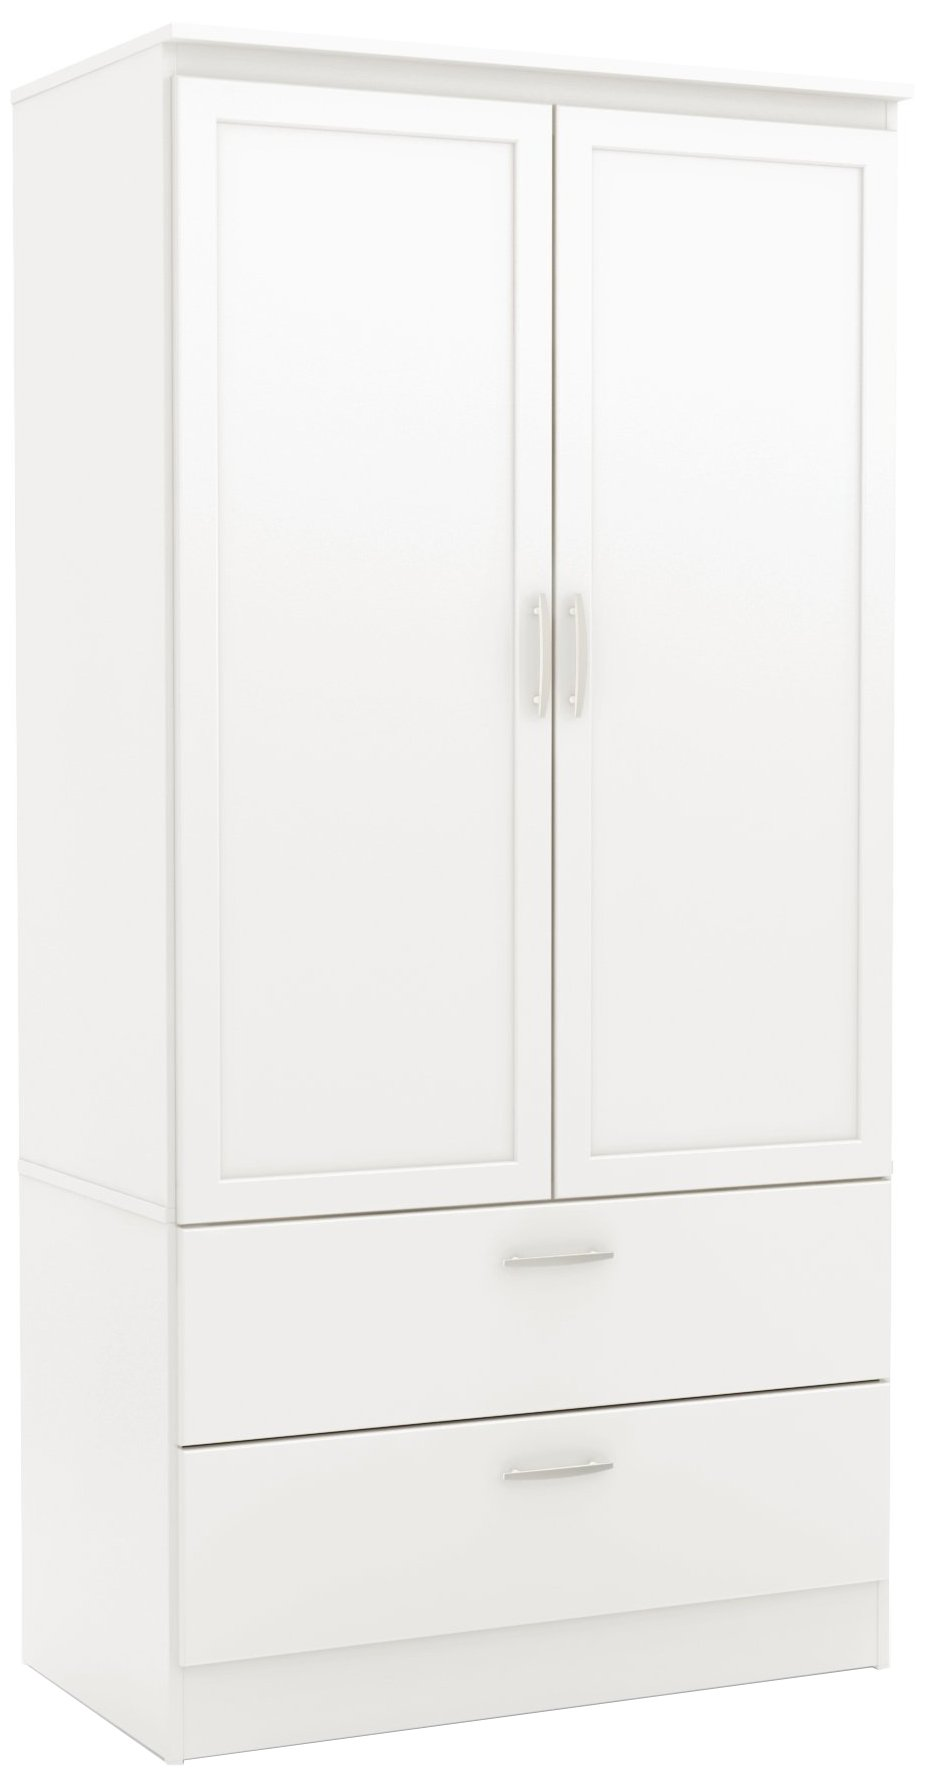 South Shore 2-Door Wardrobe Armoire with Adjustable Shelves and Storage Drawers, Pure White by South Shore